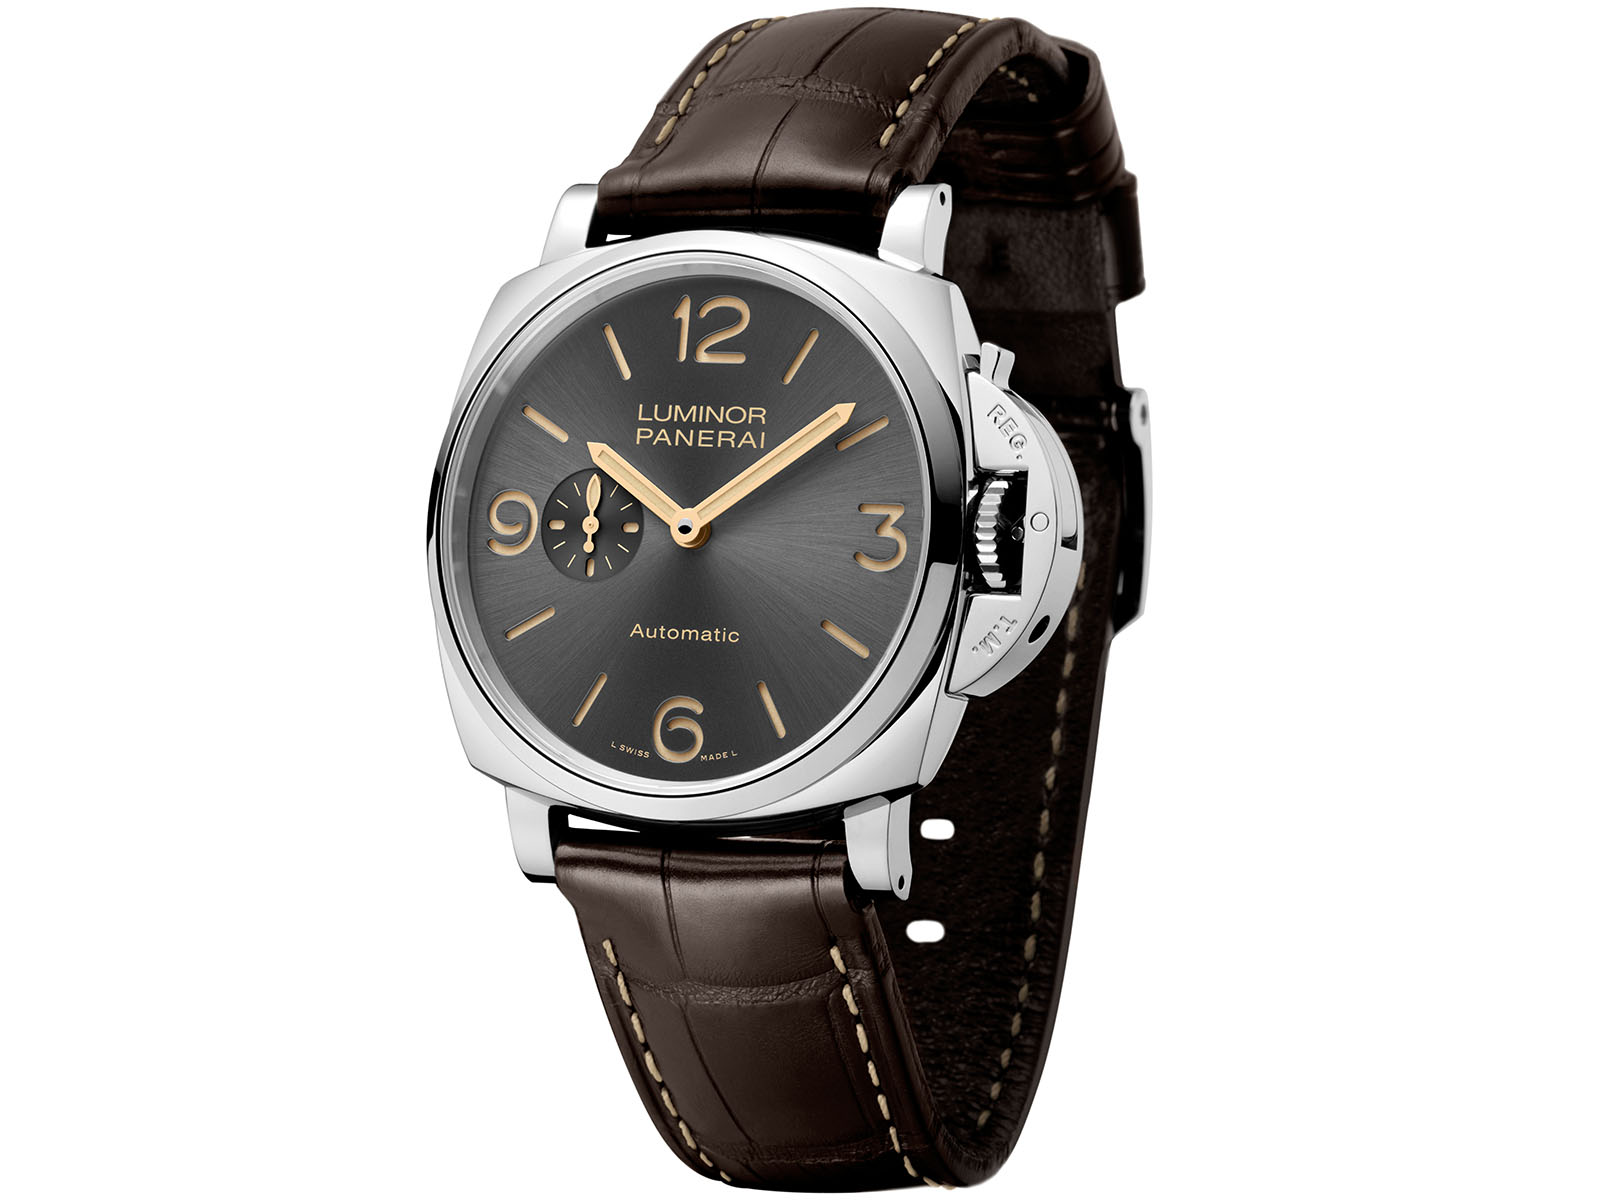 panerai-luminor-due-pam00739-1.jpg